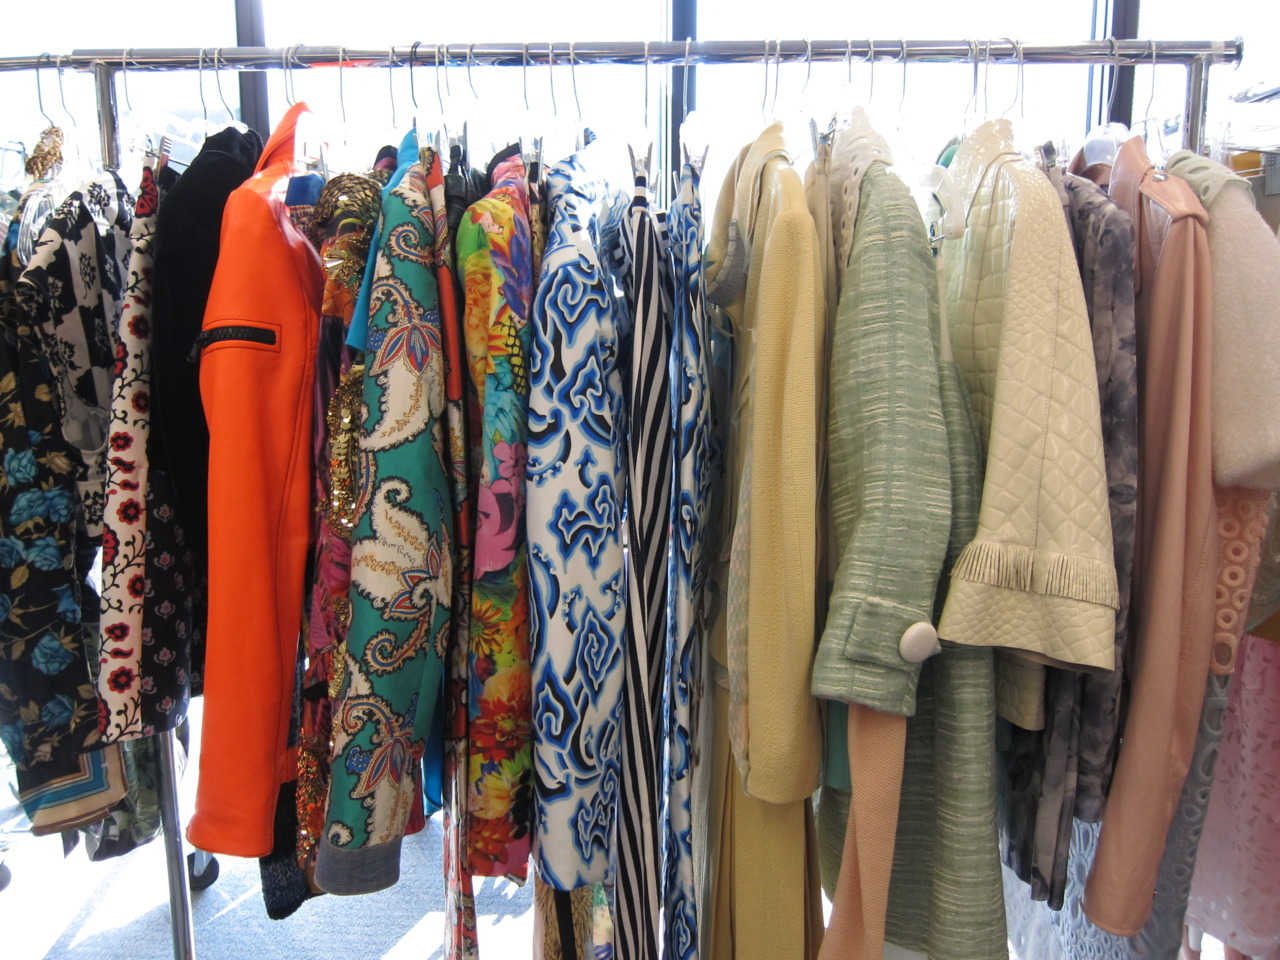 A gorgeous rack of spring-y clothes in the fashion closet for an upcoming MC shoot. We spy some Louis Vuitton! Photo: Sergio Kletnoy